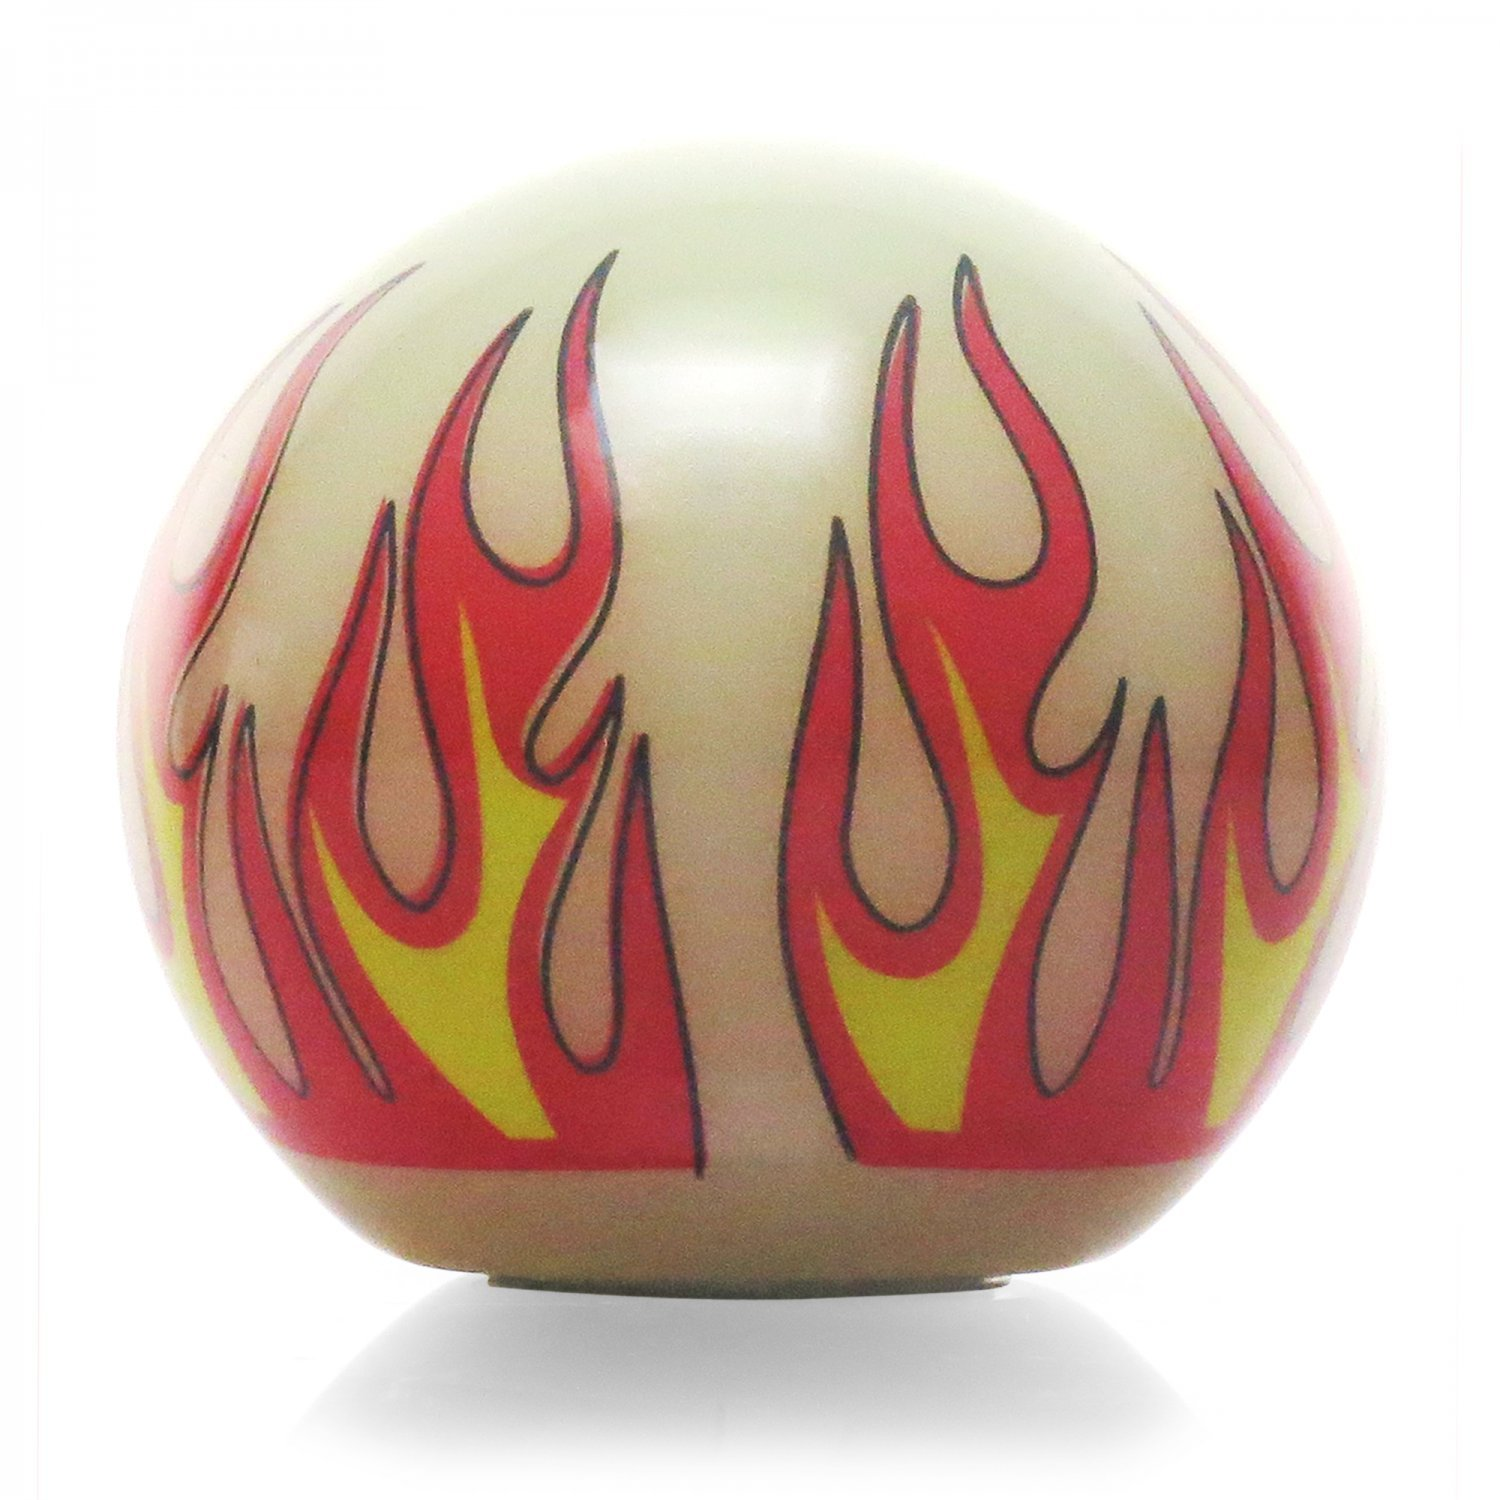 American Shifter 293993 Shift Knob Orange VW Hands Ivory Flame with M16 x 1.5 Insert